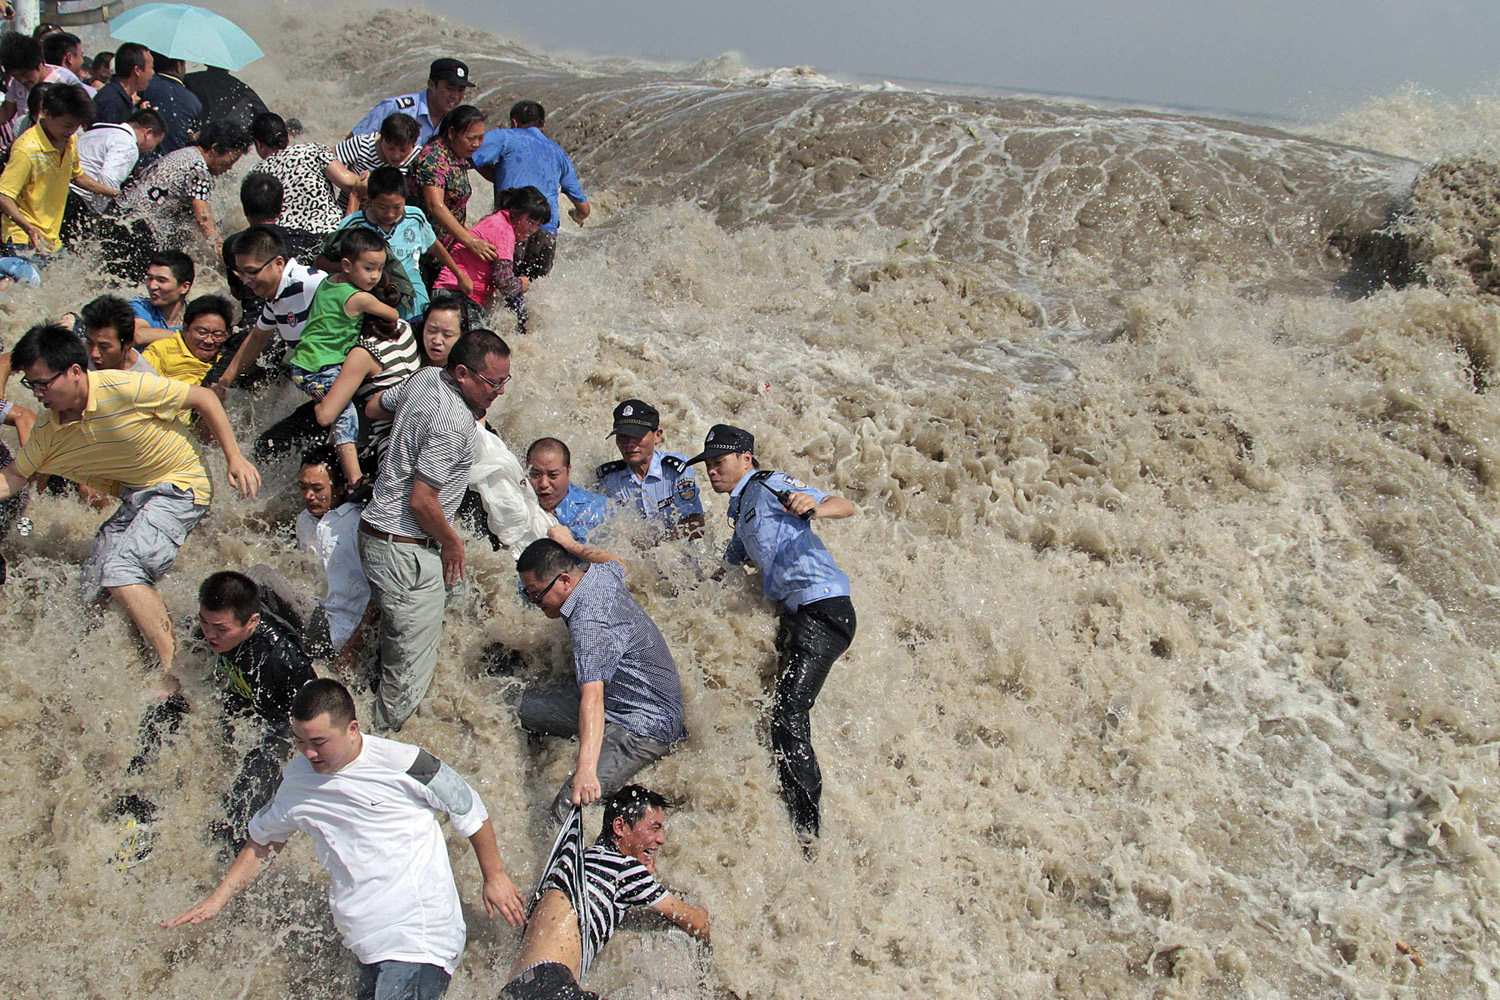 August 31, 2011. Policemen and residents run as waves from a tidal bore surge past a barrier on the banks of the Qiantang River in Haining, China.